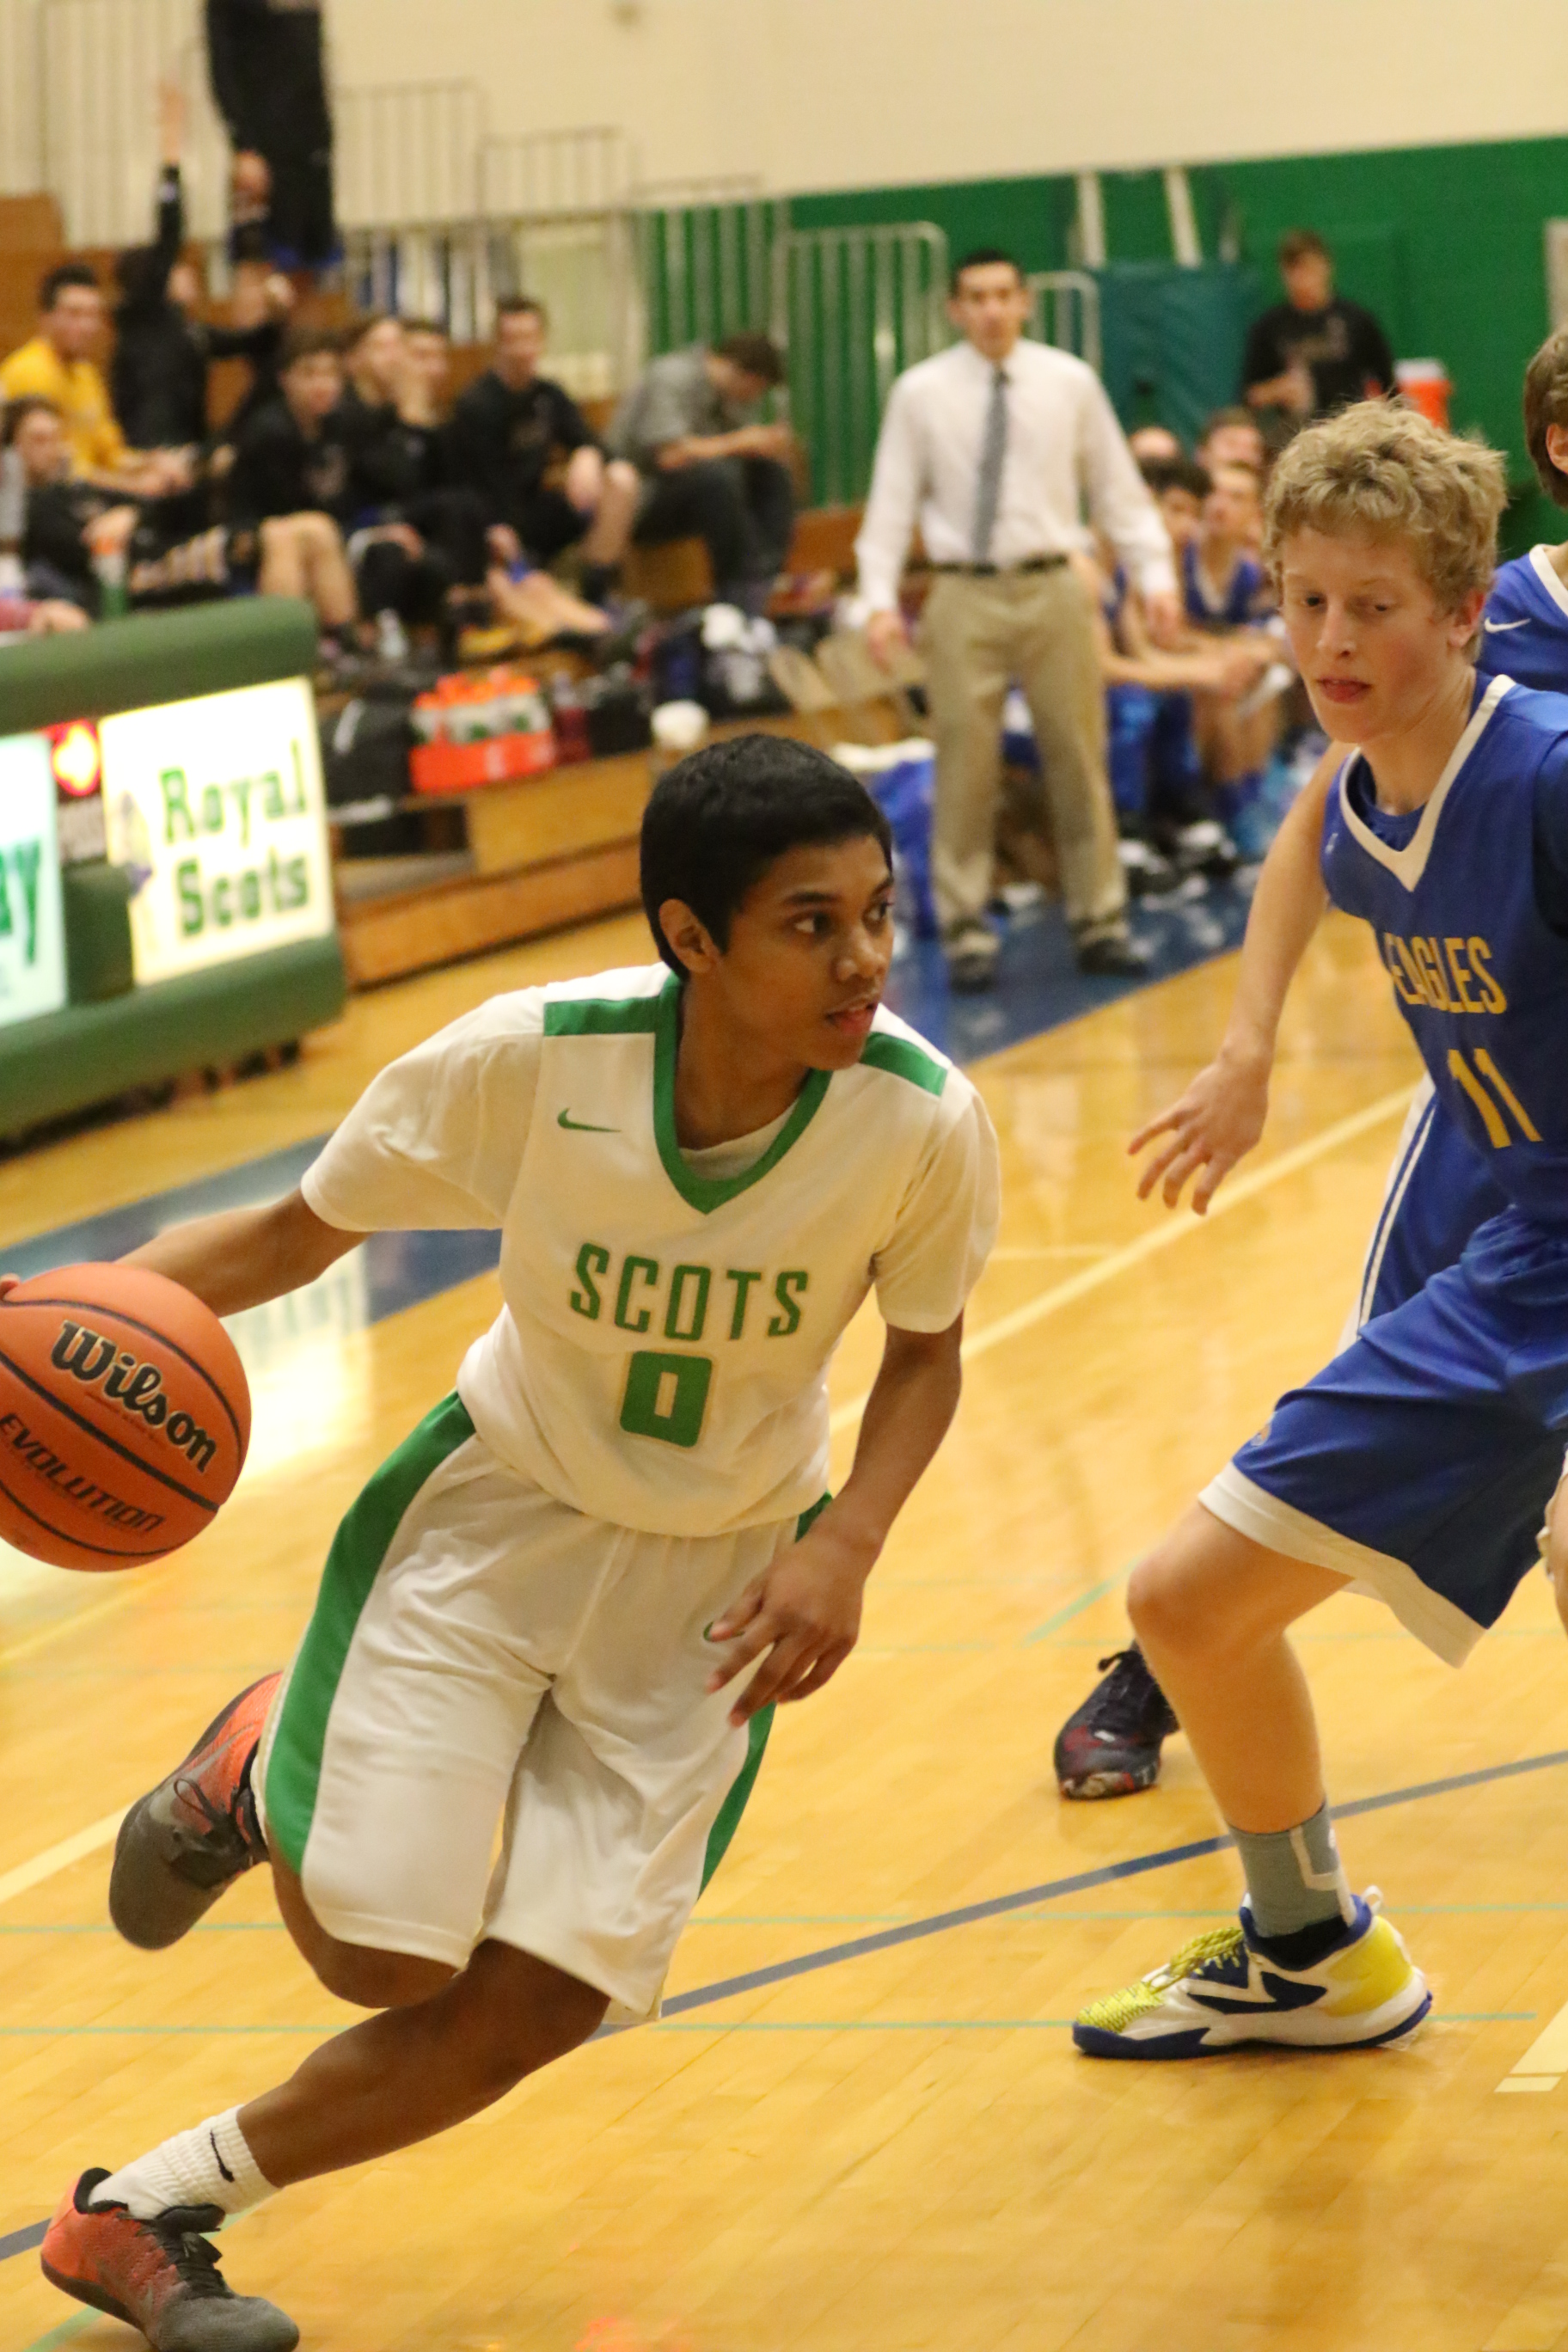 Drioji drives to the basket. Photo by Kent Brewer.